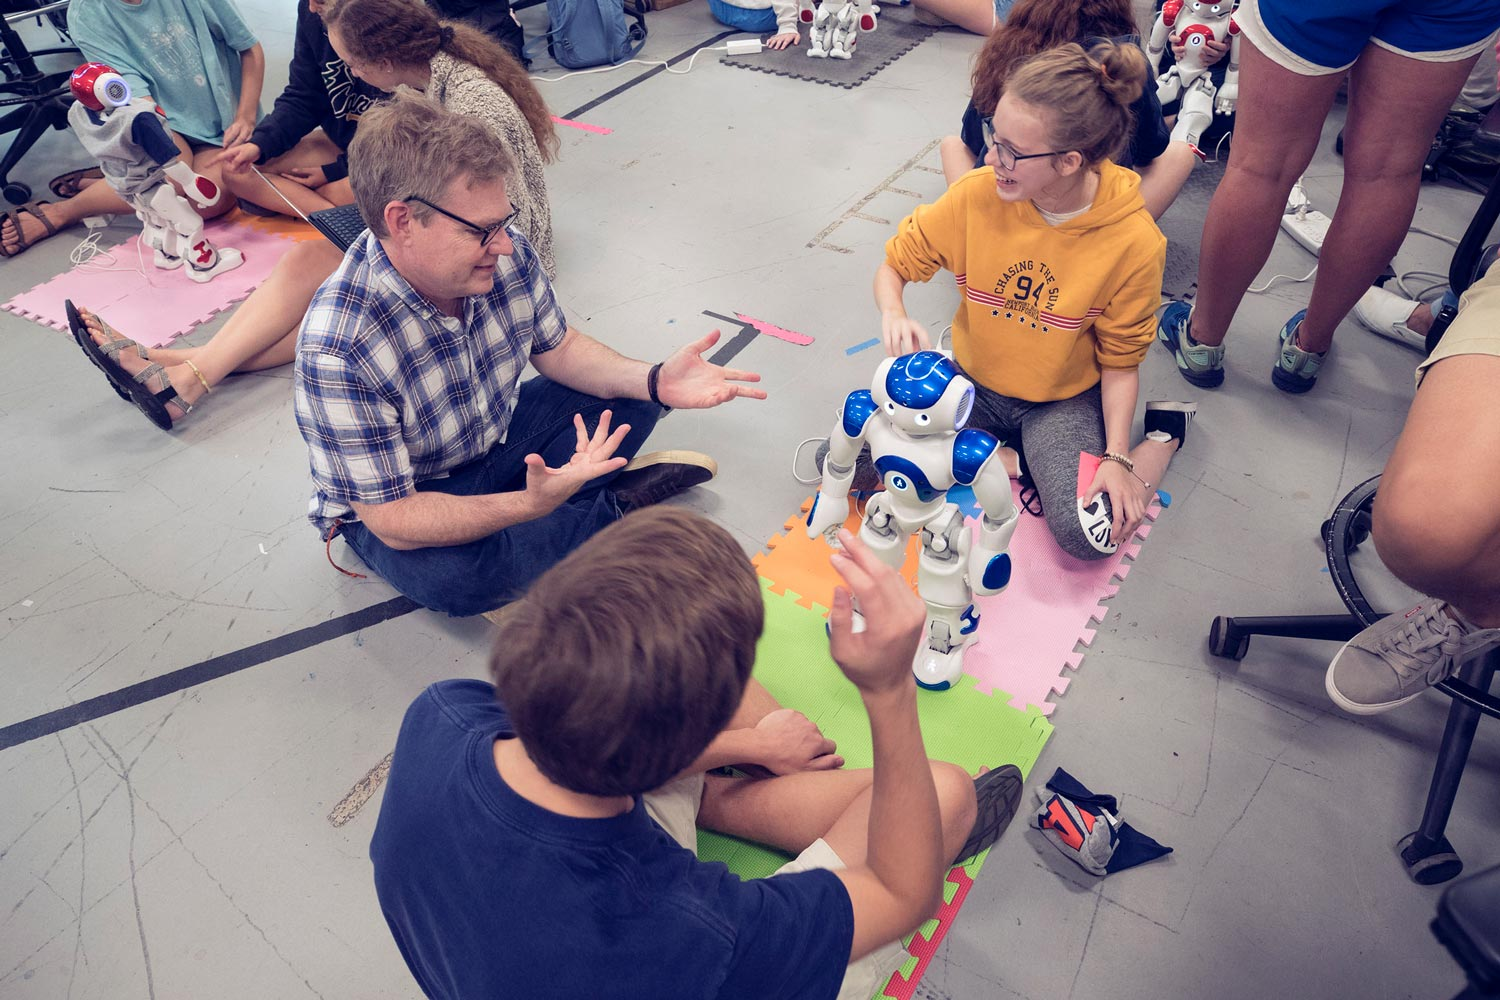 Engineering professor Keith Williams, left, works with students on programming their robot to follow commands.